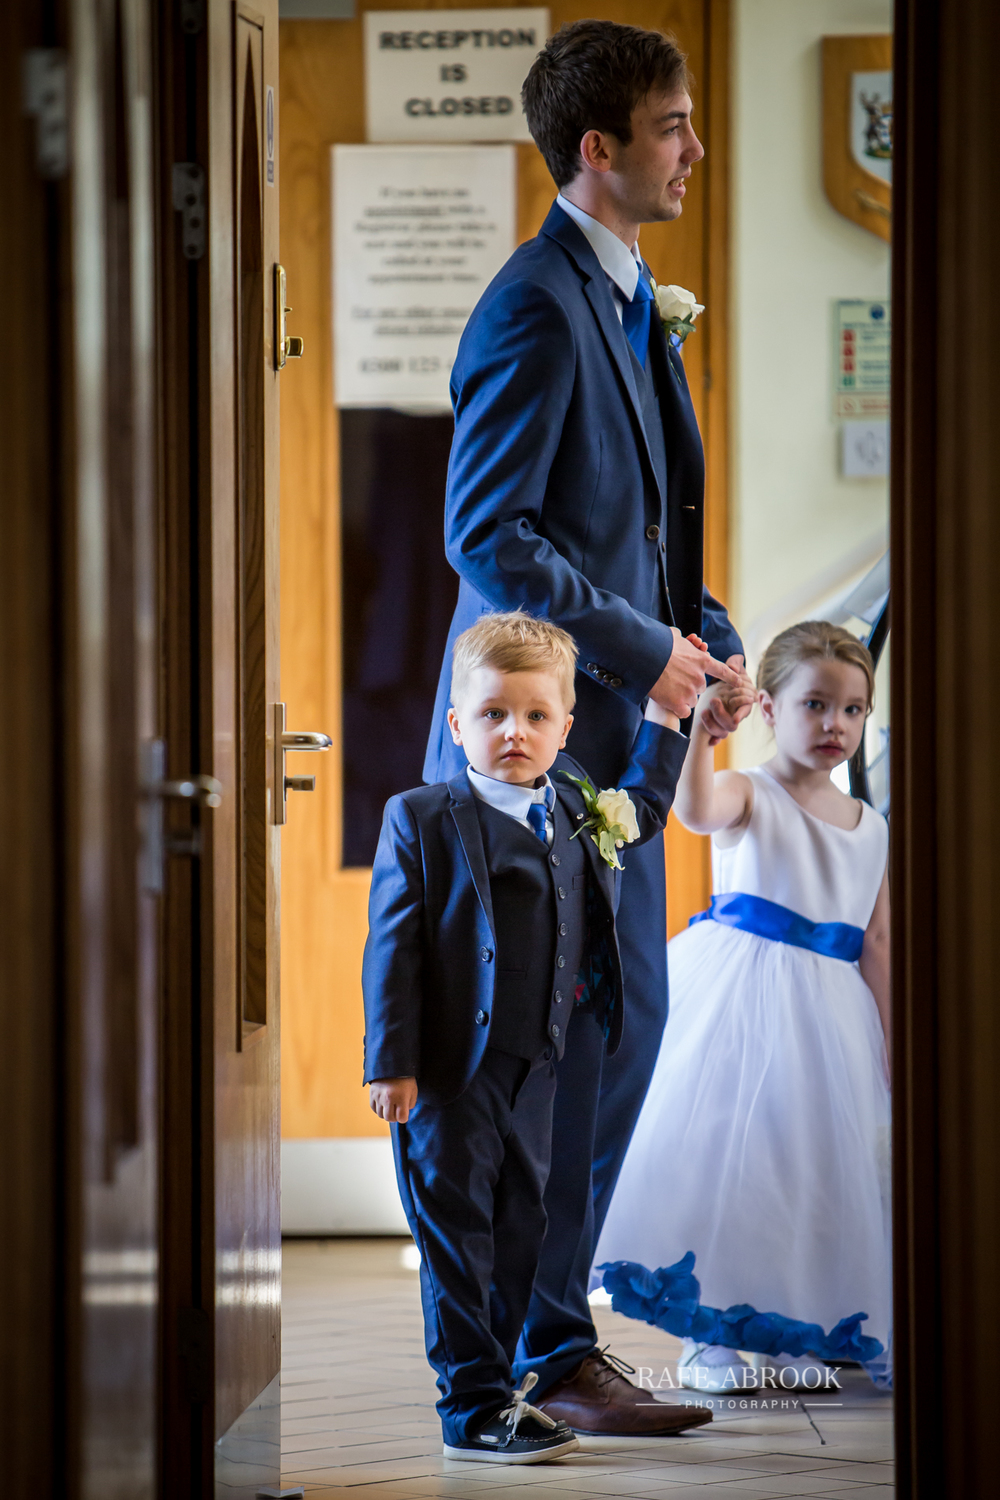 agnes & laurence wedding kings lodge hotel kings langley hertfordshire-1092.jpg